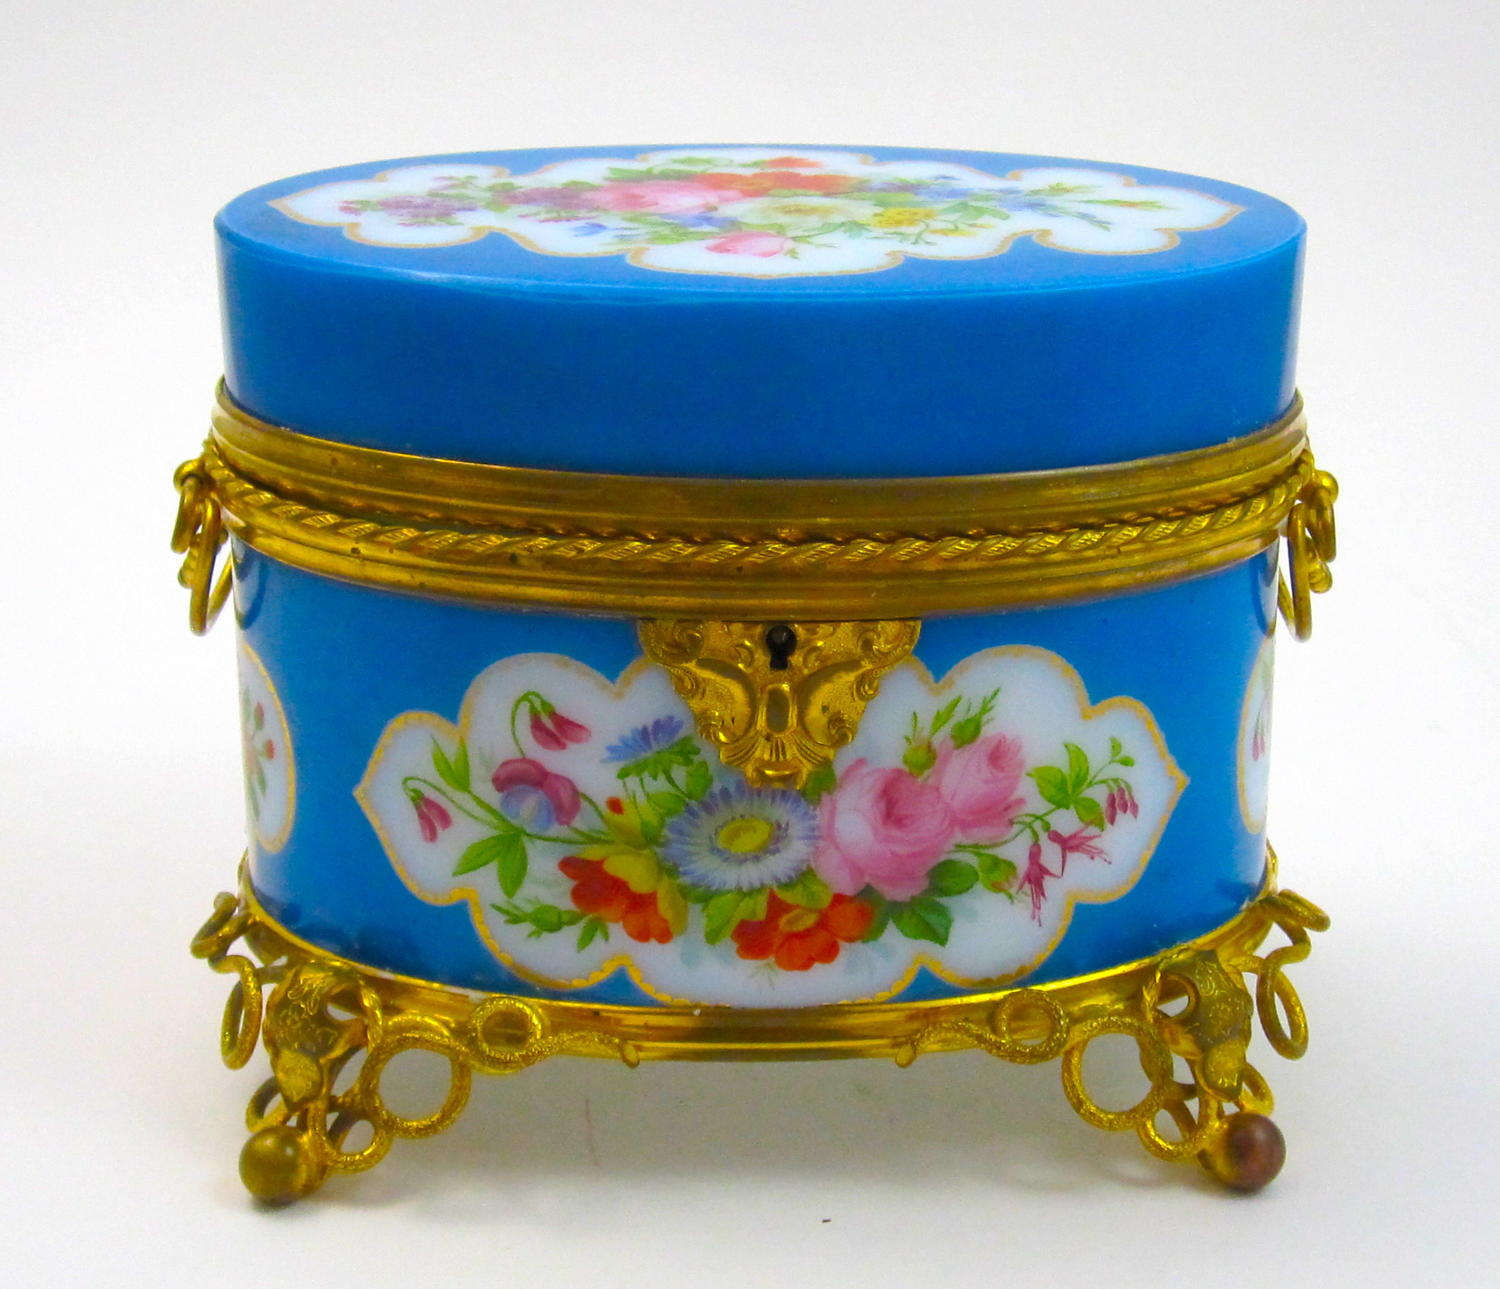 Rare BACCARAT Blue Opaline Glass Casket Box by J.F Robert